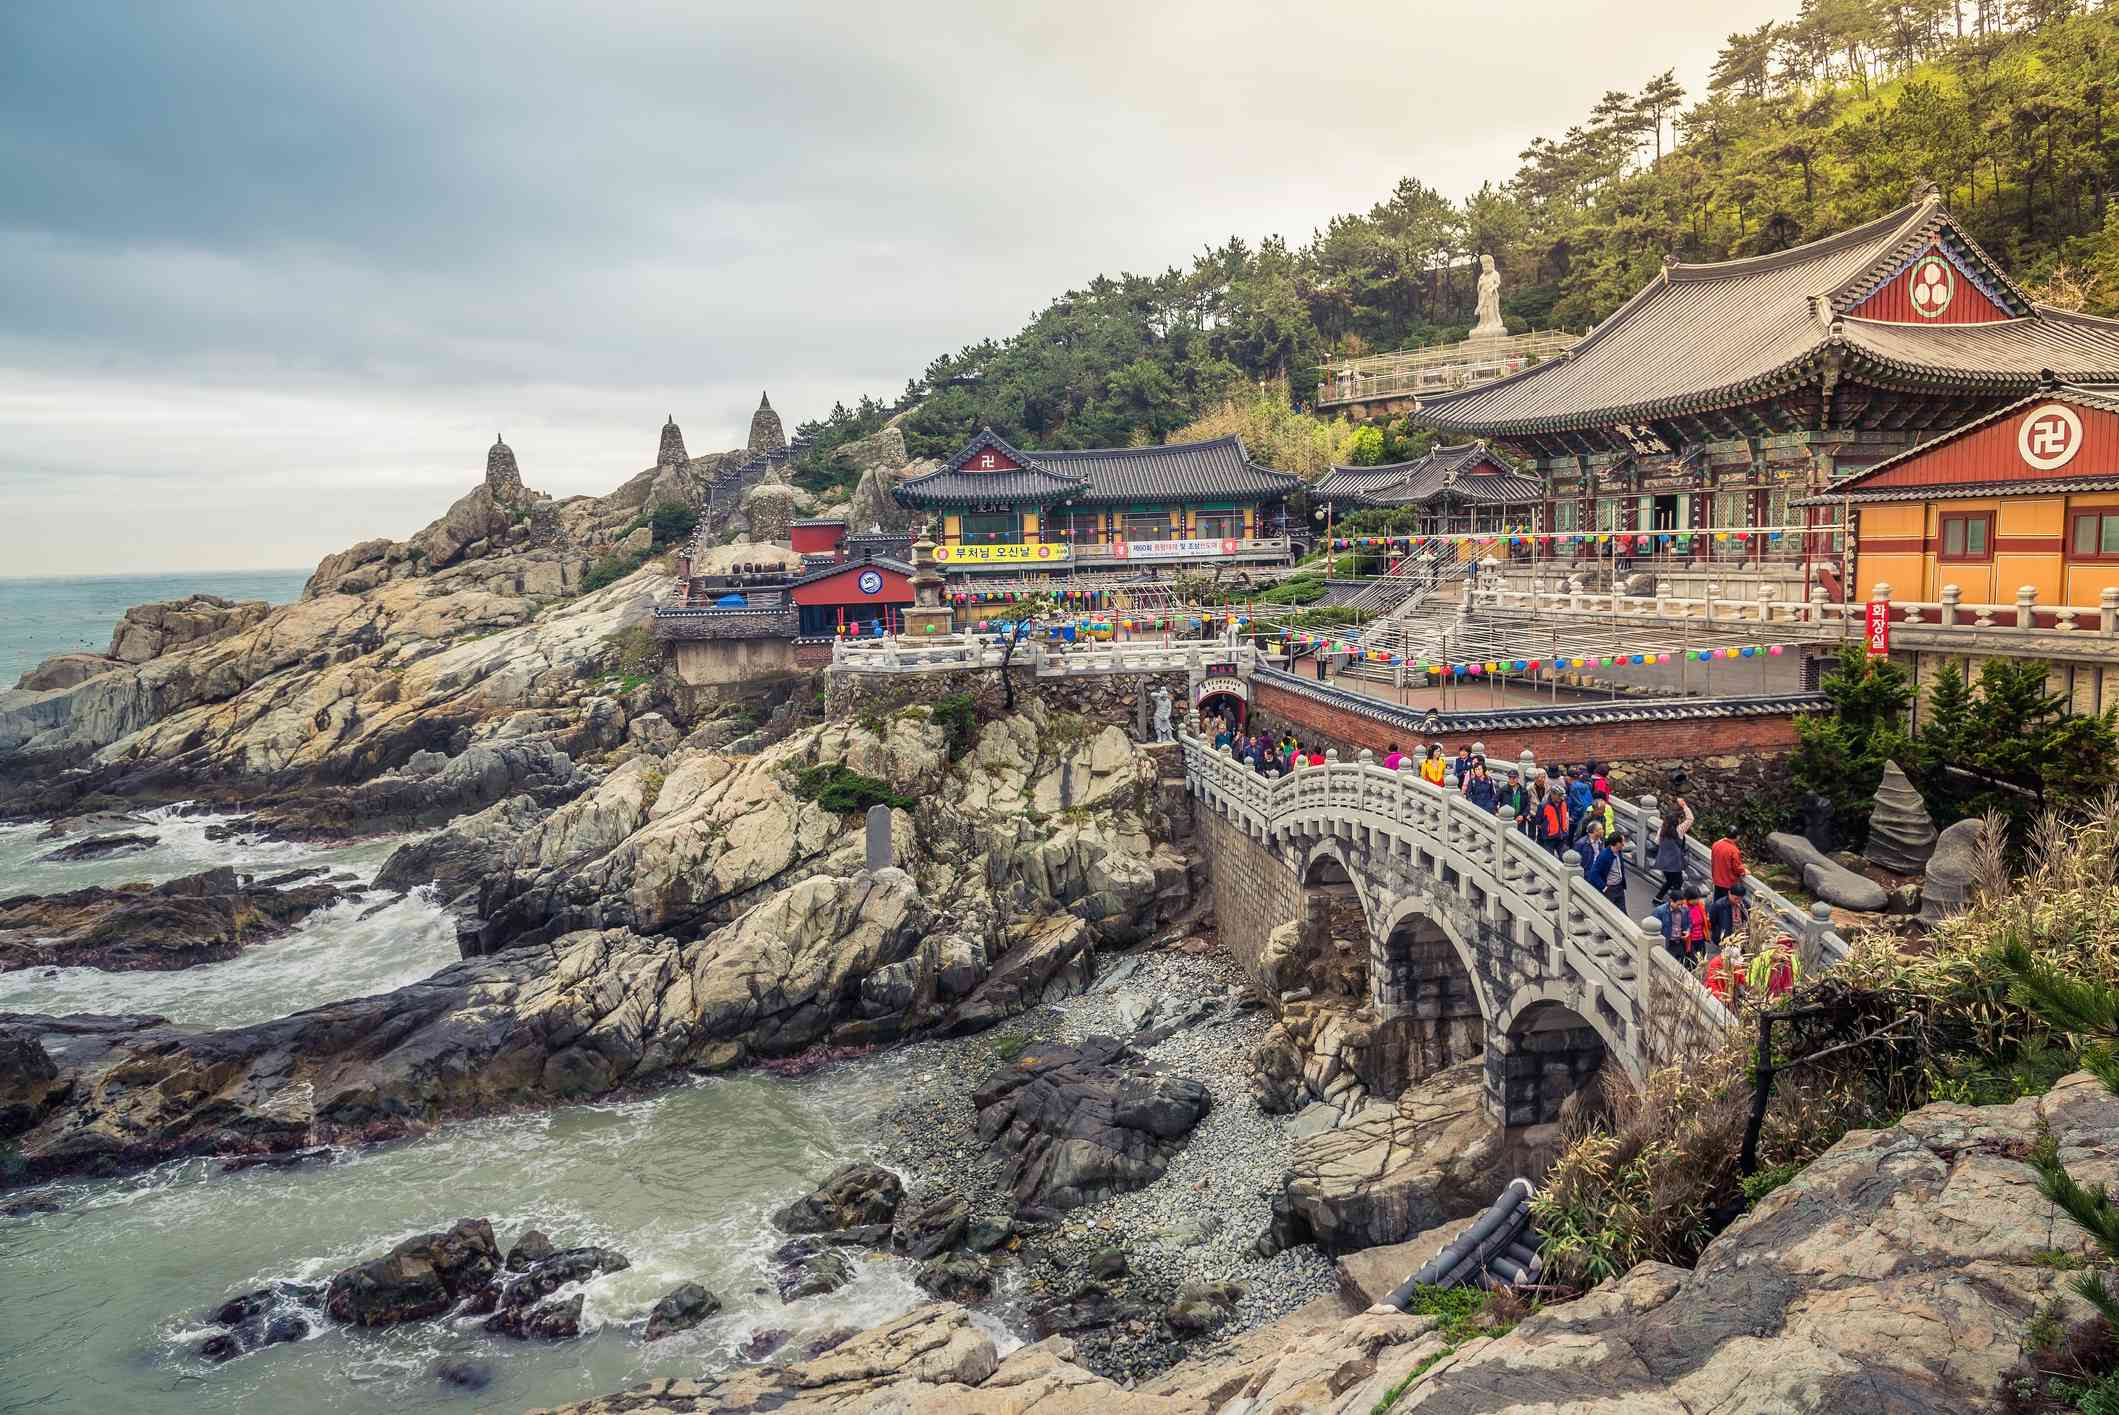 Haedong yonggungsa temple on the seaside in Busan , South Korea with colorful lanterns around the temple's paths